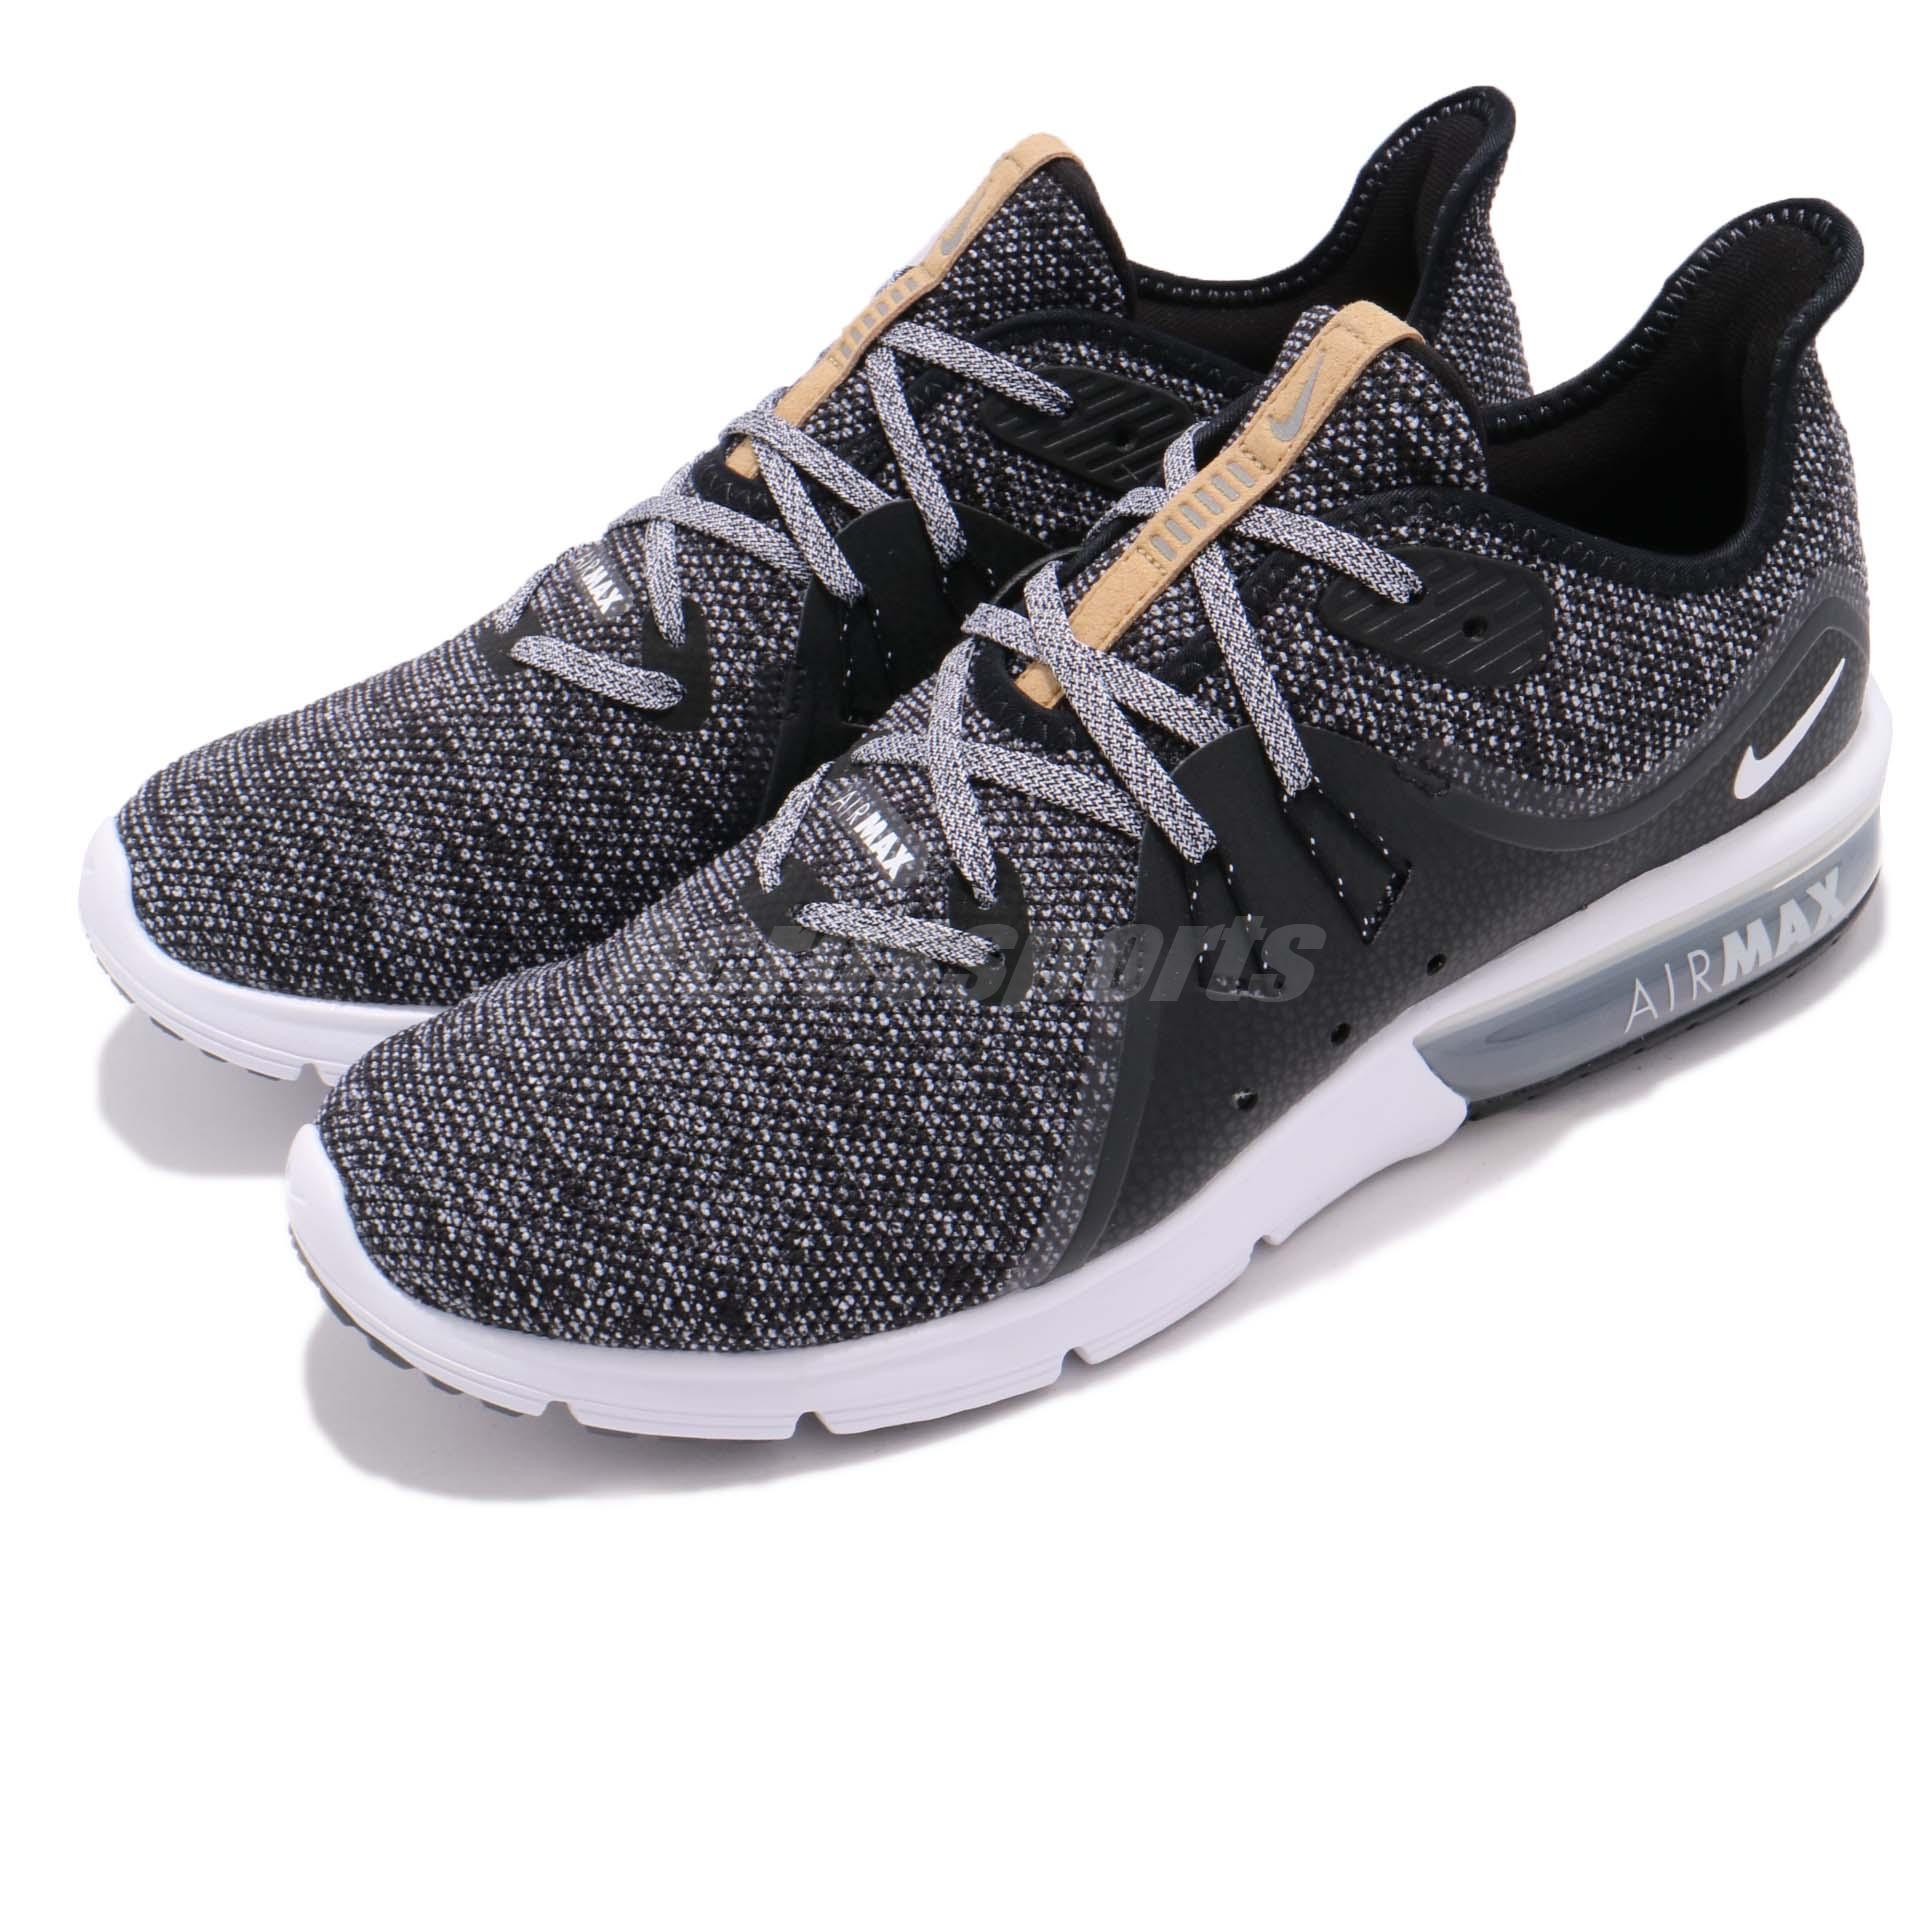 Details about Nike Air Max Sequent 3 III Black White Grey Men Running Shoes  Sneaker 921694-011 54a673948d48c